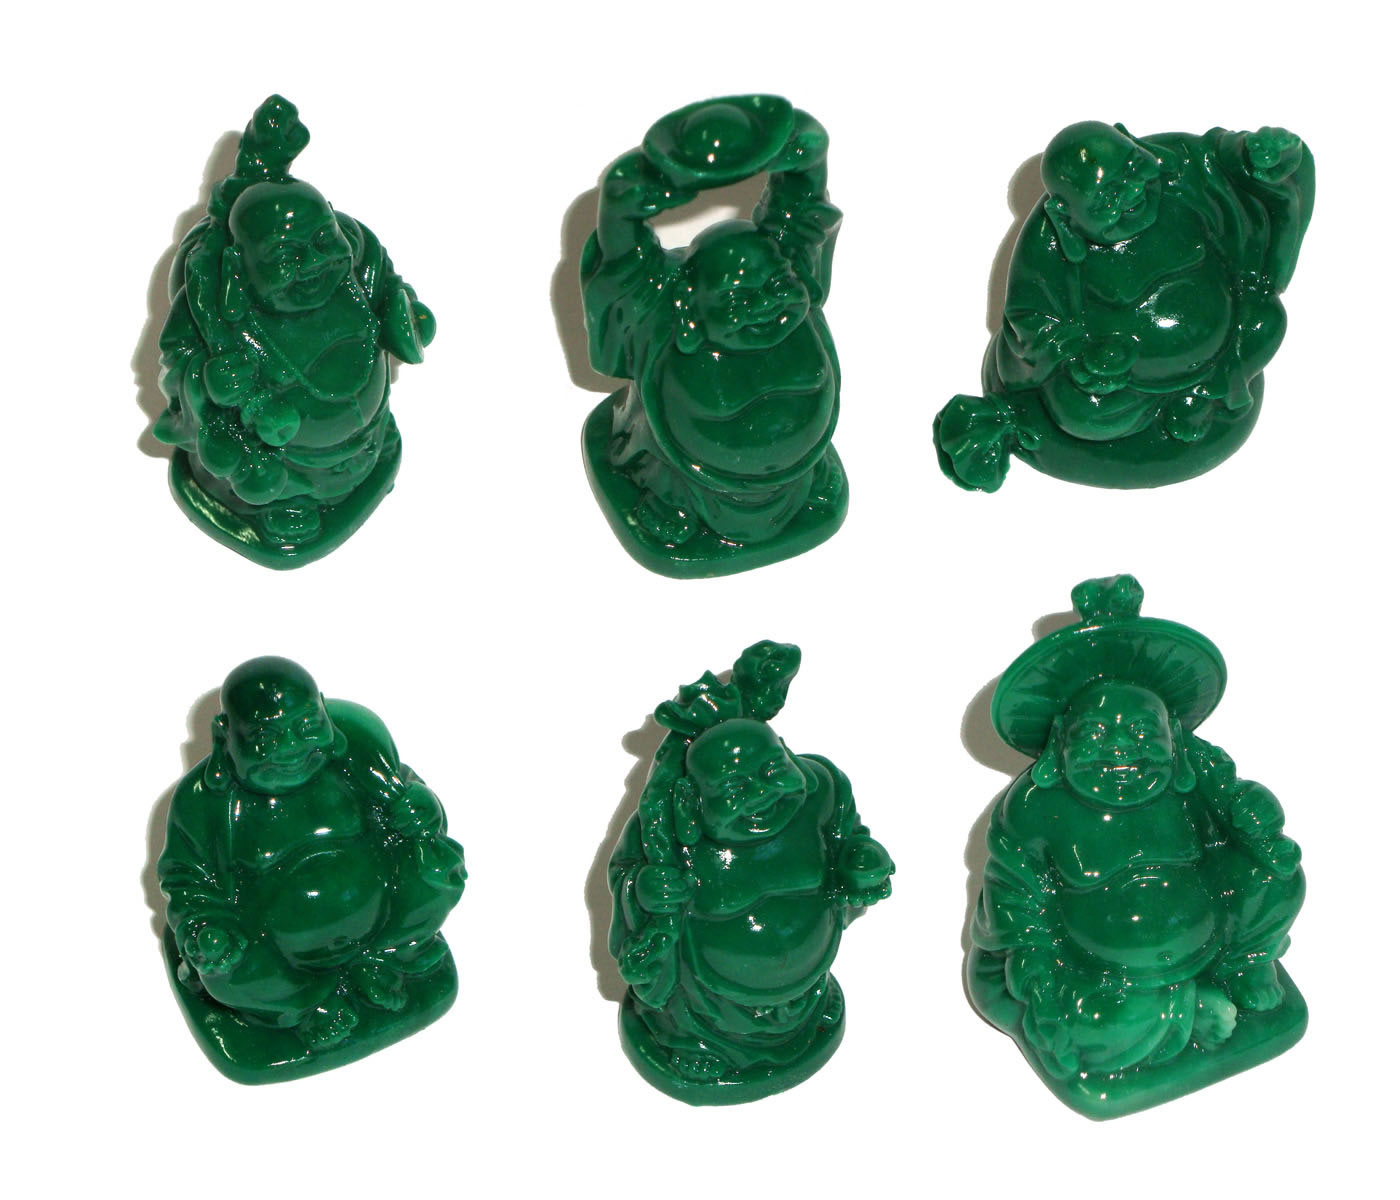 Laughing Buddha Statues Set of 6 - JADE